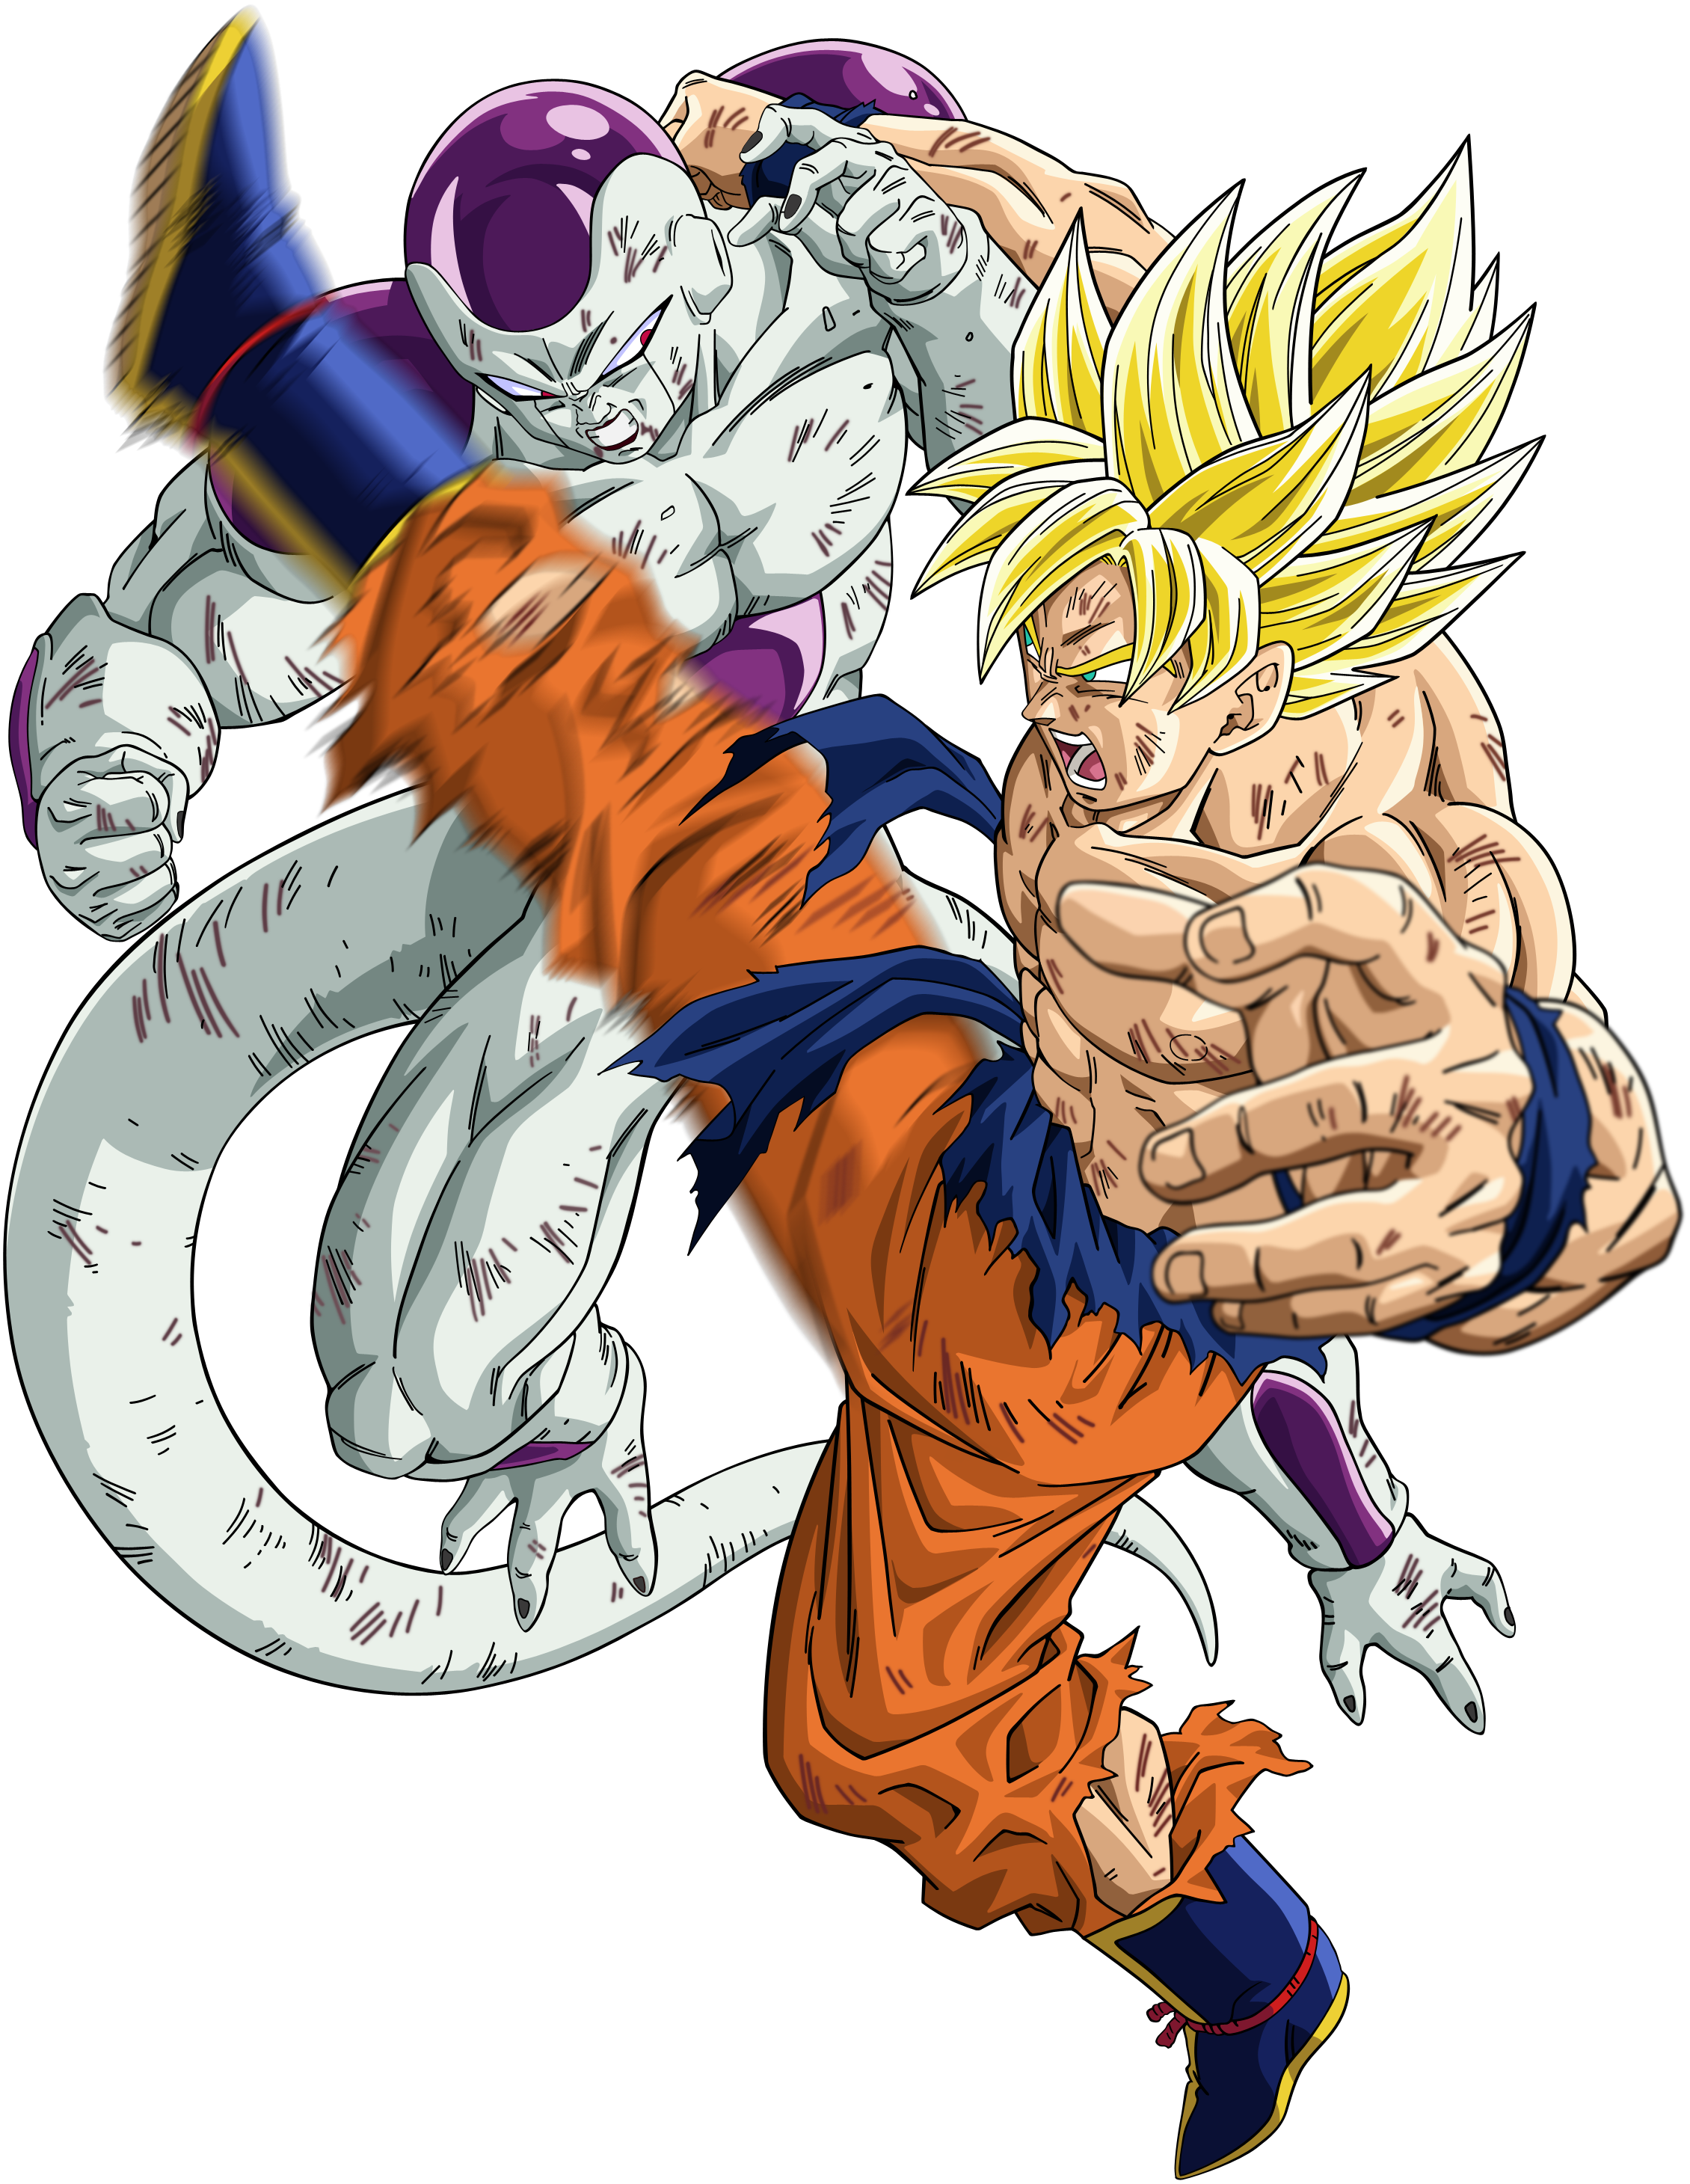 Anime hankering goku super saiyan - Goku vs vegeta super saiyan 5 ...